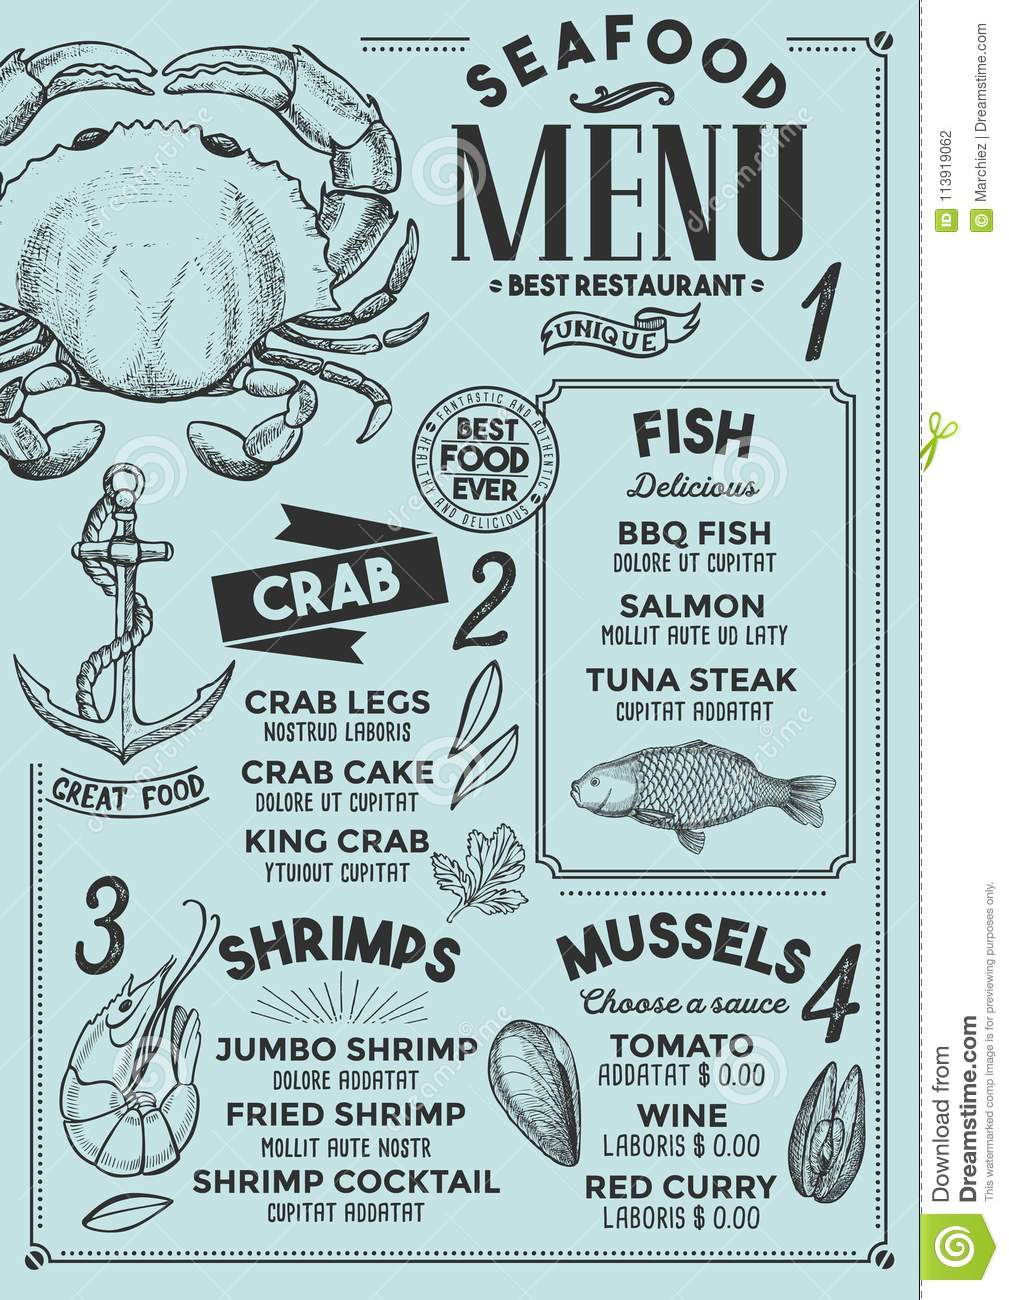 Seafood Menu Restaurant Food Template Stock Vector Illustration Of Hipster Cover 113919062